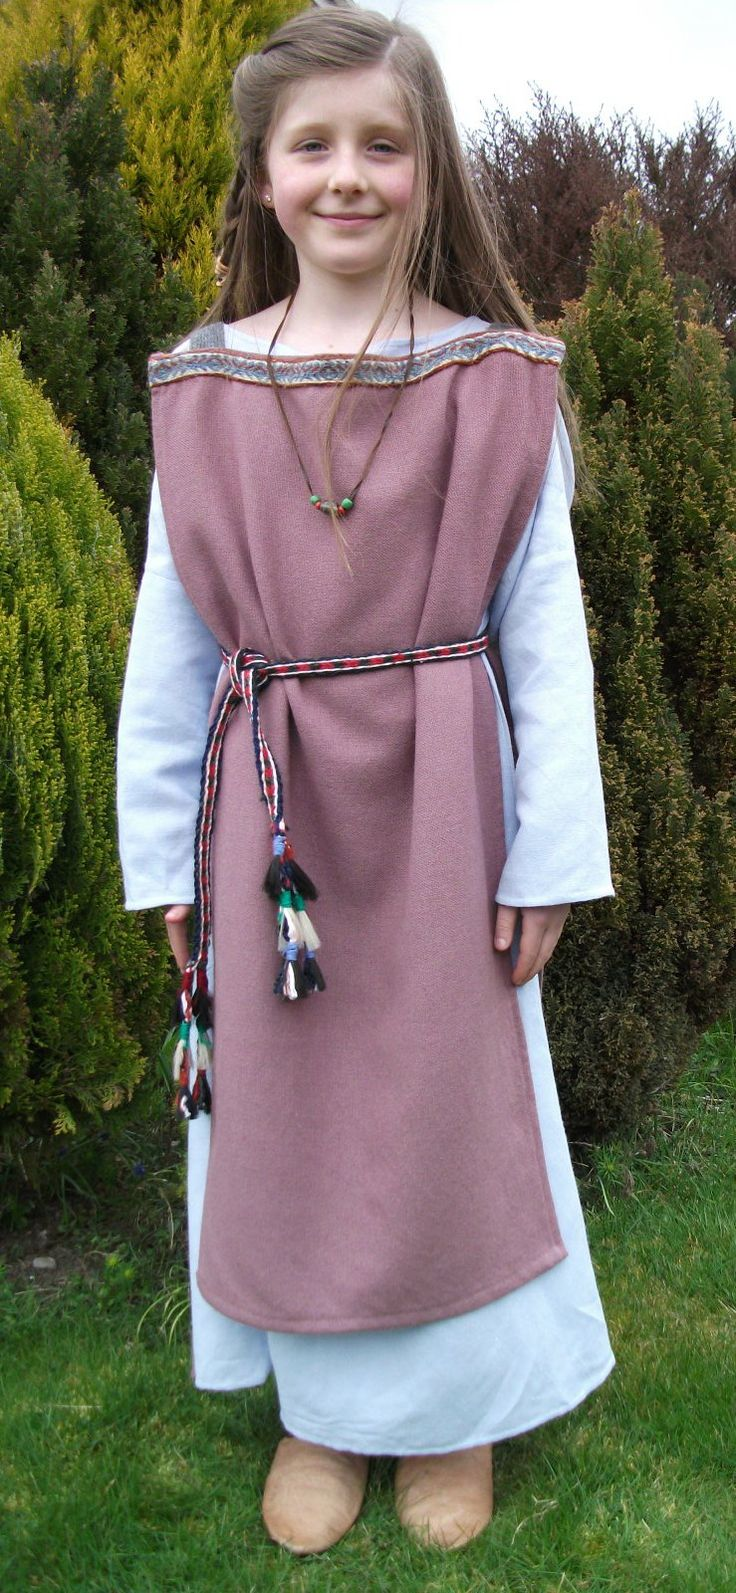 Viking Girlsu0026#39; dress http//www.history-explorer.co.uk/replicas/product_viking_apron_dress.jpg ...